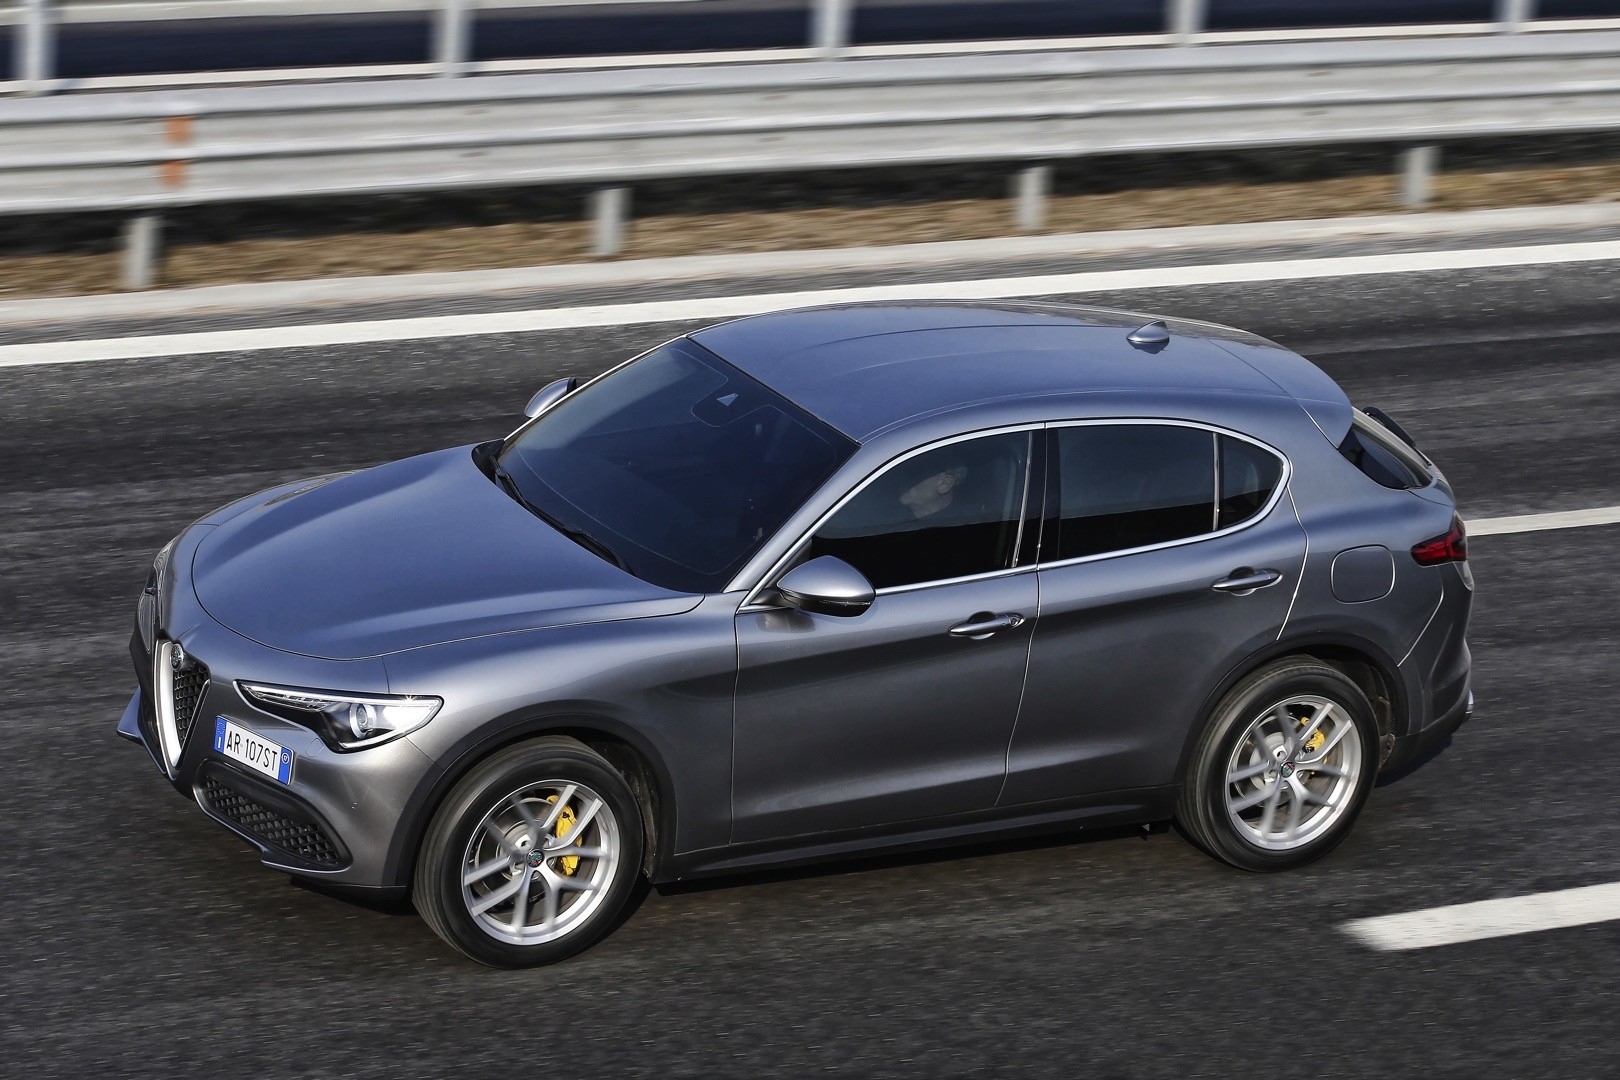 alfa romeo expands stelvio range with 200 ps turbo and rwd 2 2l 180 ps diesel autoevolution. Black Bedroom Furniture Sets. Home Design Ideas